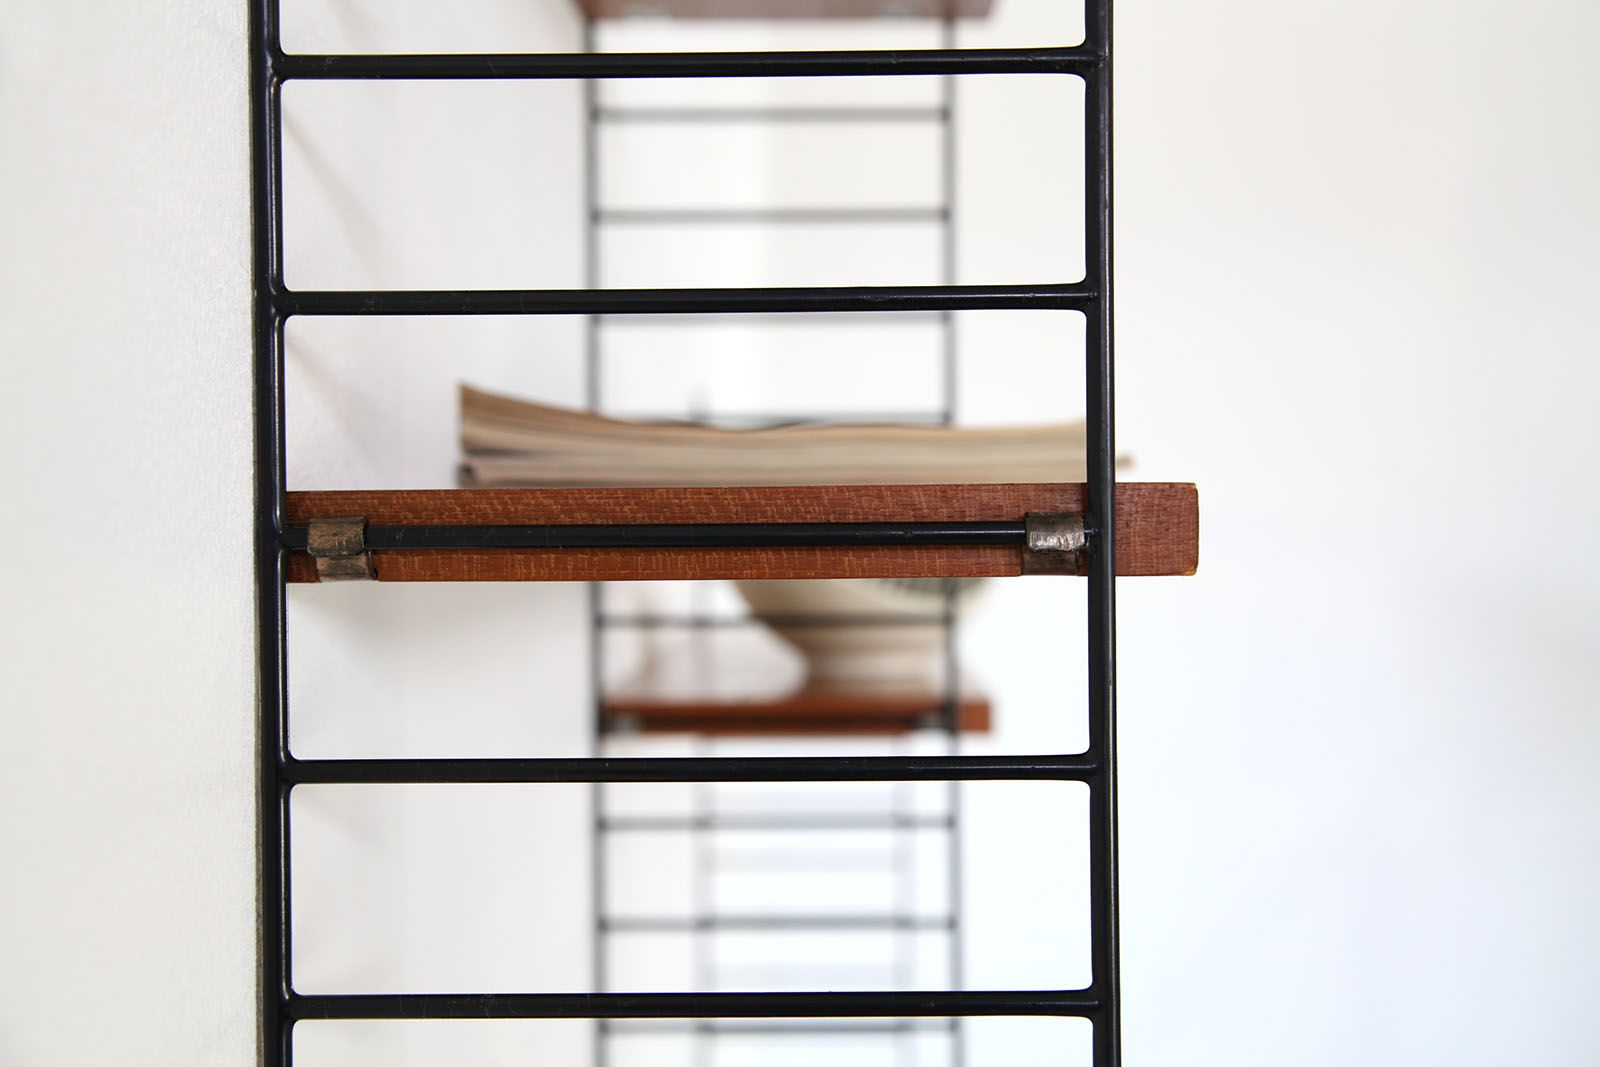 Marvelous photograph of Vintage Teak Wall Unit by Nisse & Katja Strinning for String for sale  with #723D29 color and 1600x1067 pixels